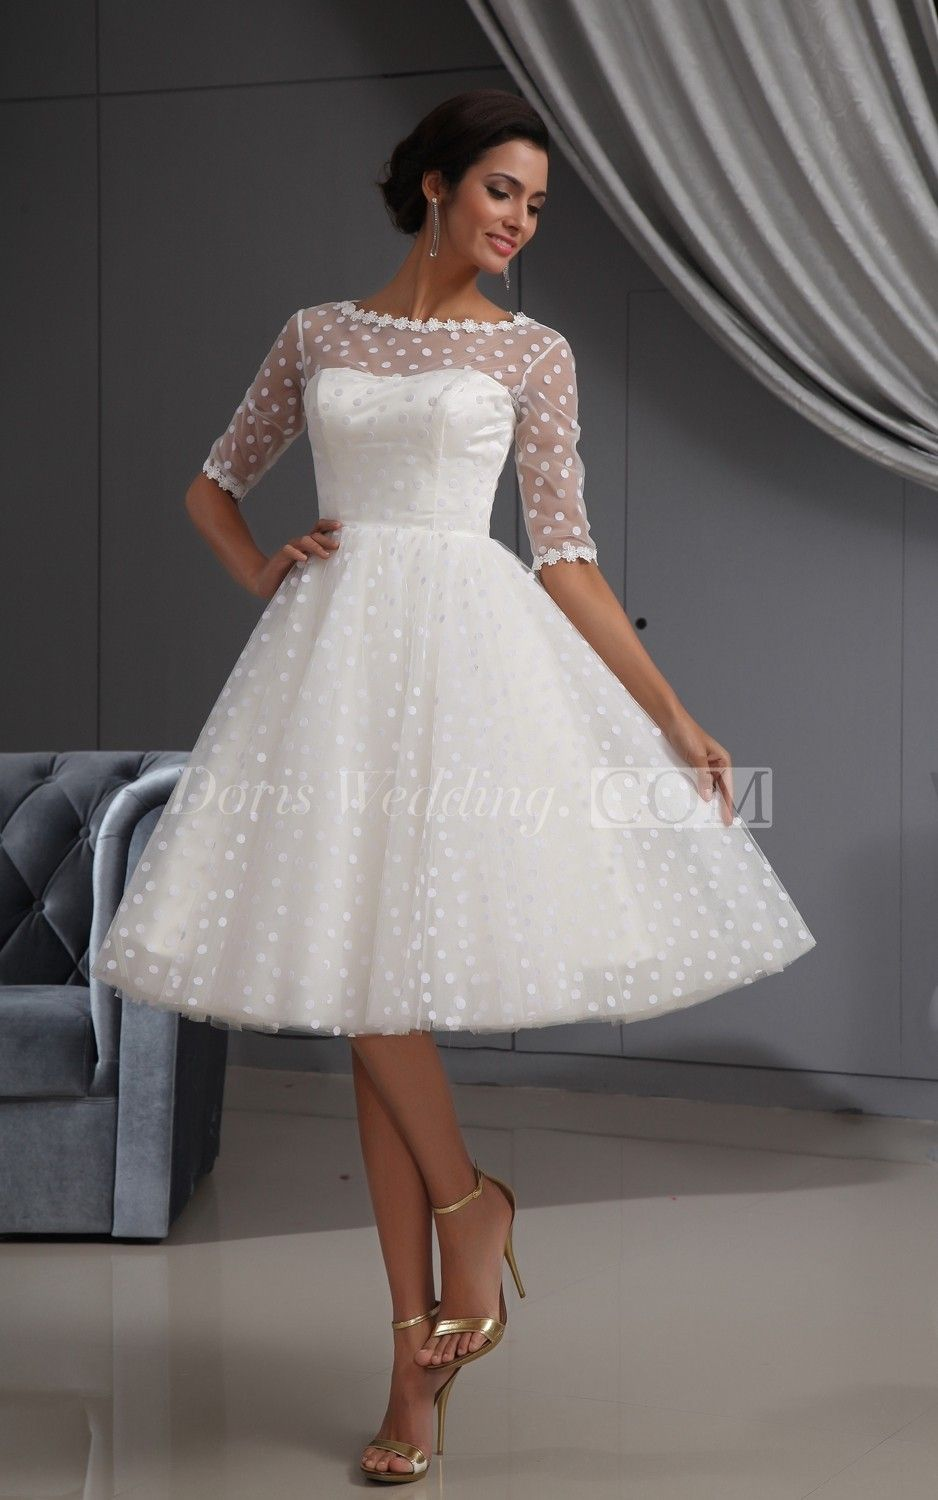 Half Sleeve Illusion Knee Length Short Dress With Lace And Dot Knee Length Wedding Dress Lace Wedding Dress With Sleeves Ball Gowns Wedding